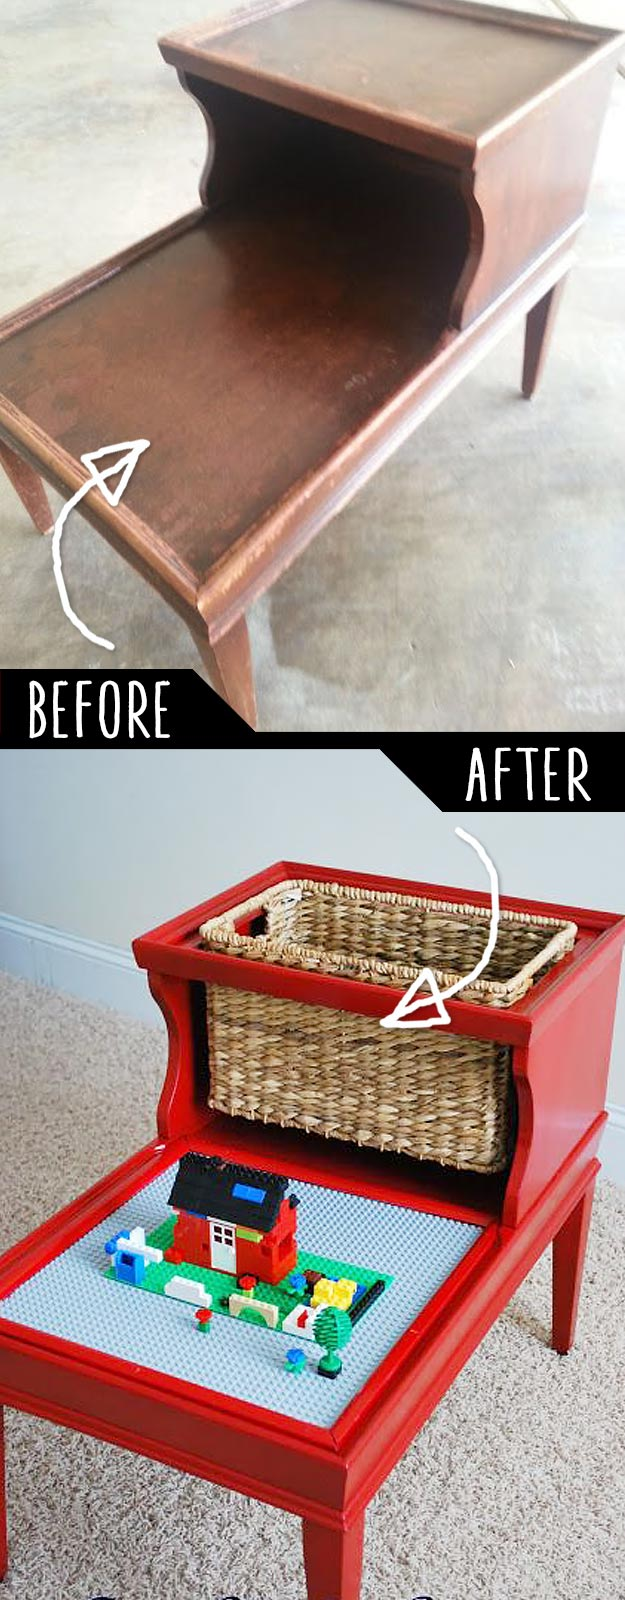 DIY Furniture Hacks | An Old Table into Kids Lego Table | Cool Ideas for Creative Do It Yourself Furniture Made From Things You Might Not Expect  #diy